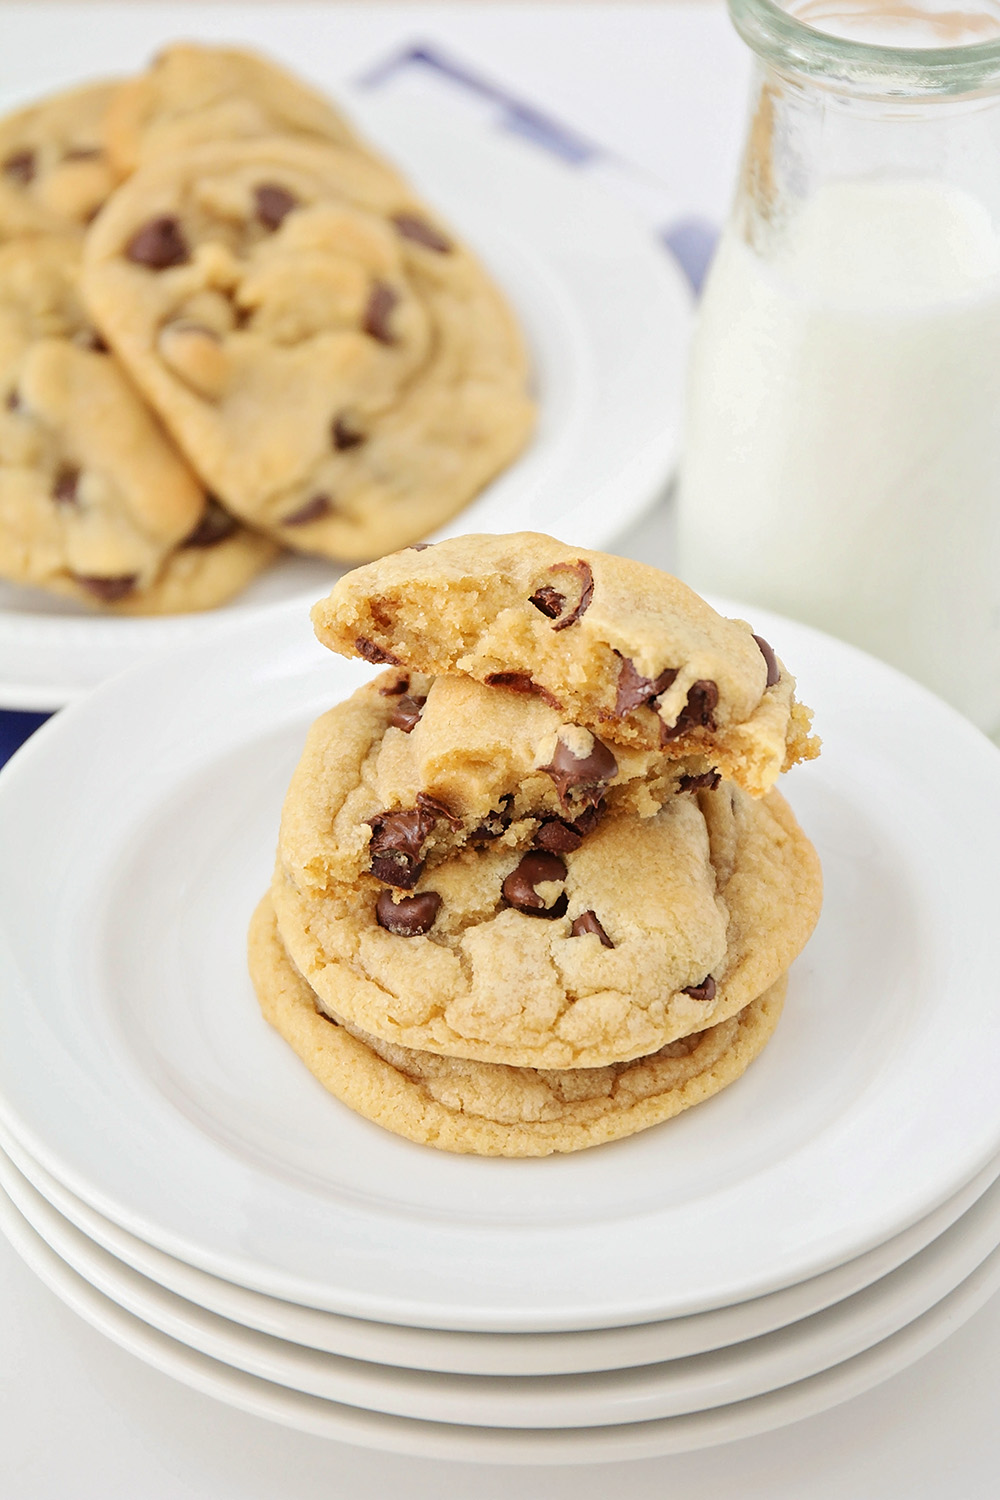 These perfect chocolate chip cookies are the only recipe you need for thick, chewy, luscious cookies! They're super easy to make and amazingly delicious!